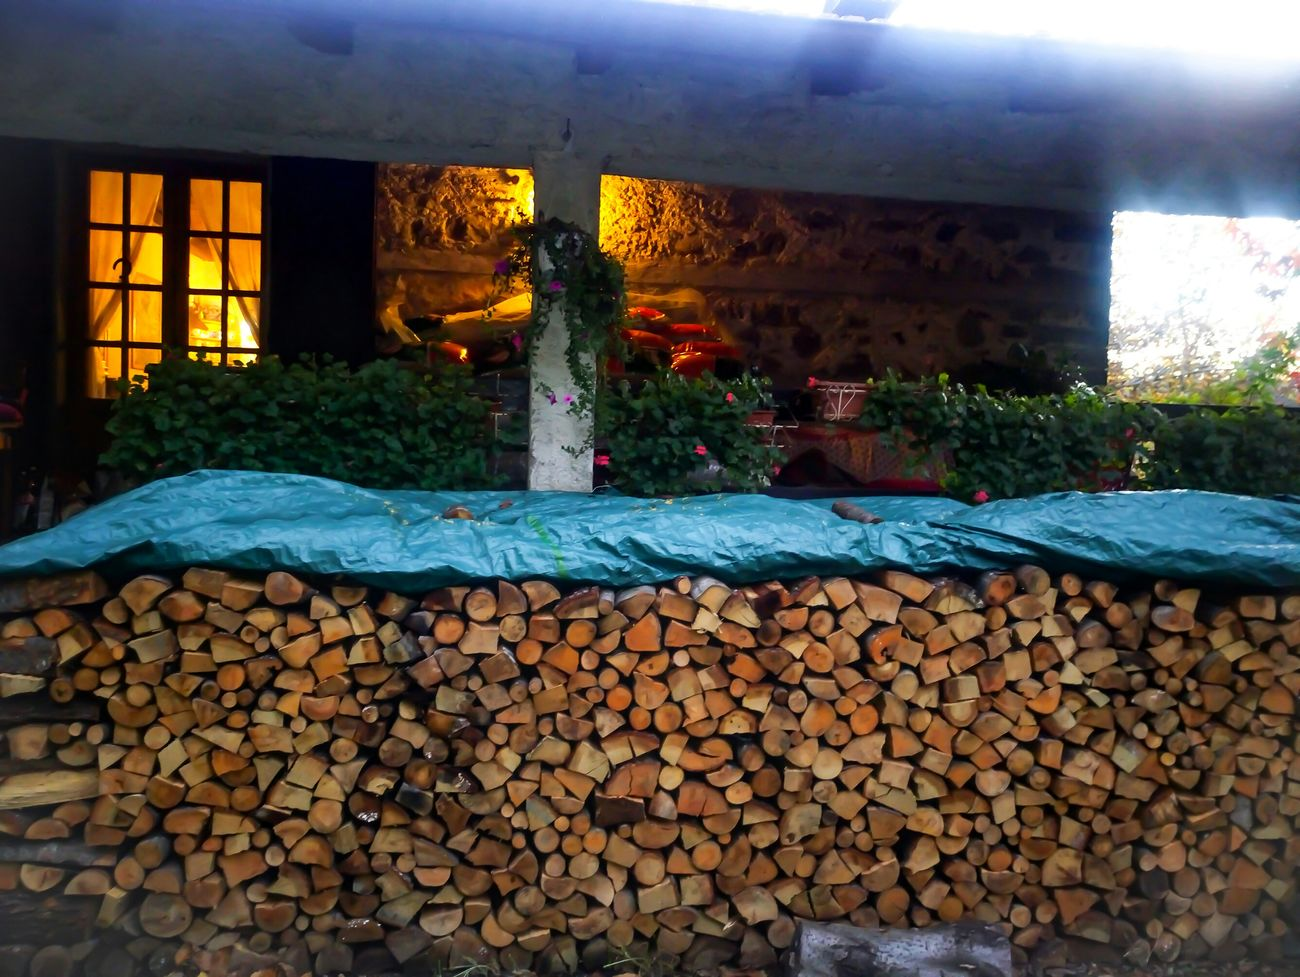 Hello World Relaxing At Home Sweet Home In The Wood Autumn StonexOneGalileo Parco Nazionale Appennino Tosco-emiliano Relaxing StonexOne Life In Colors Hi! Toscany